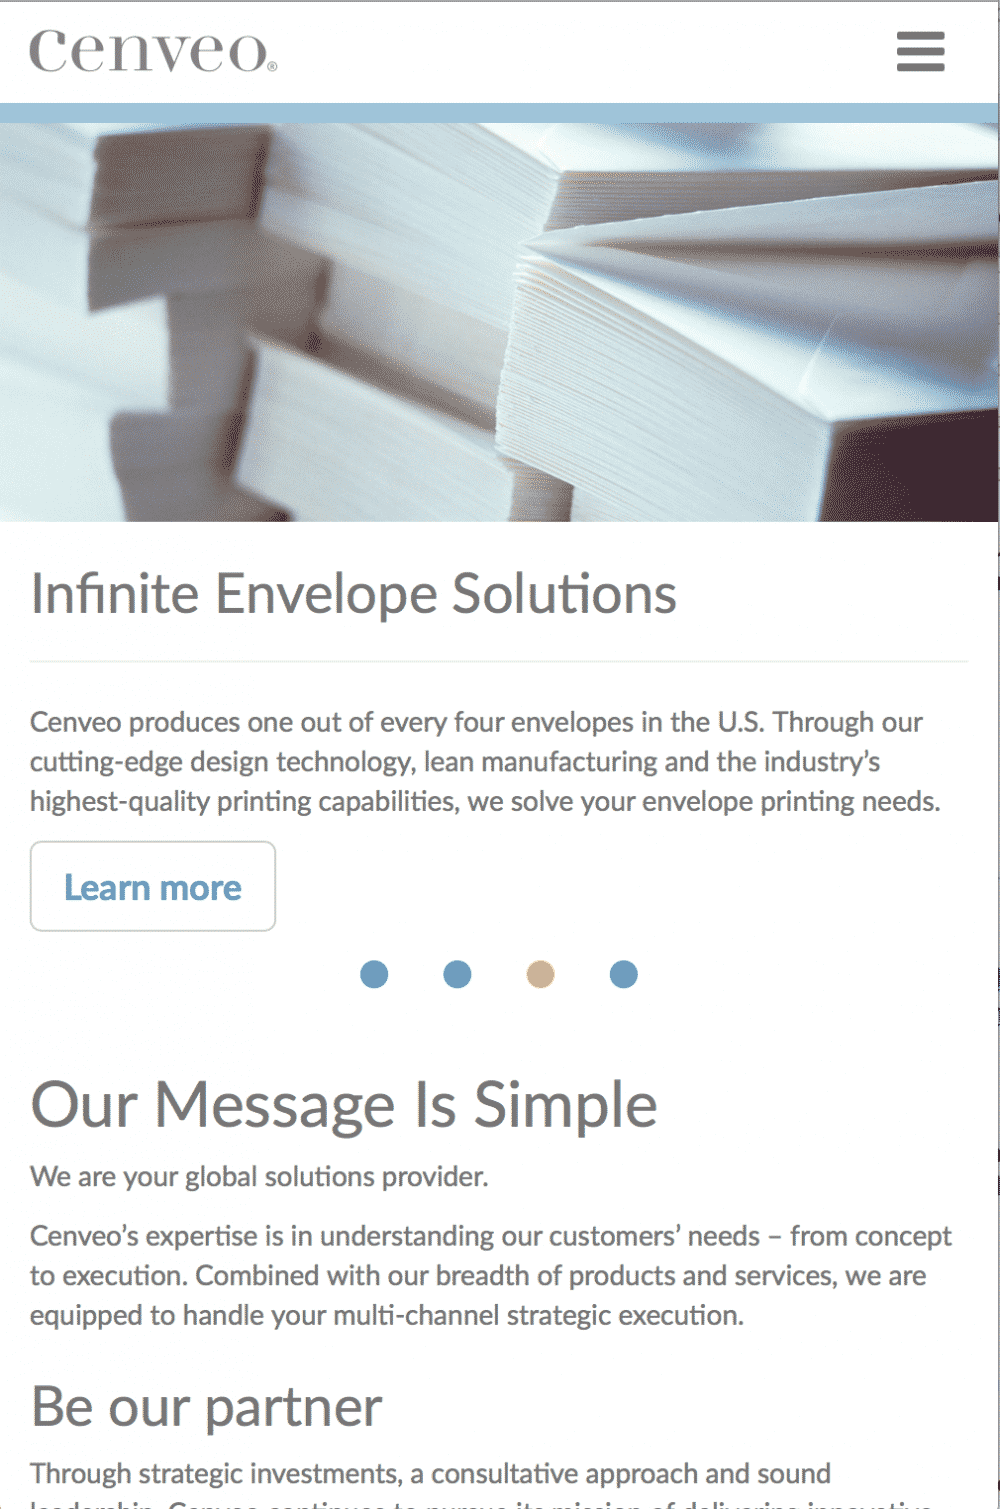 Cenveo Envelopes' Mobile Responsive page launched in Kentico